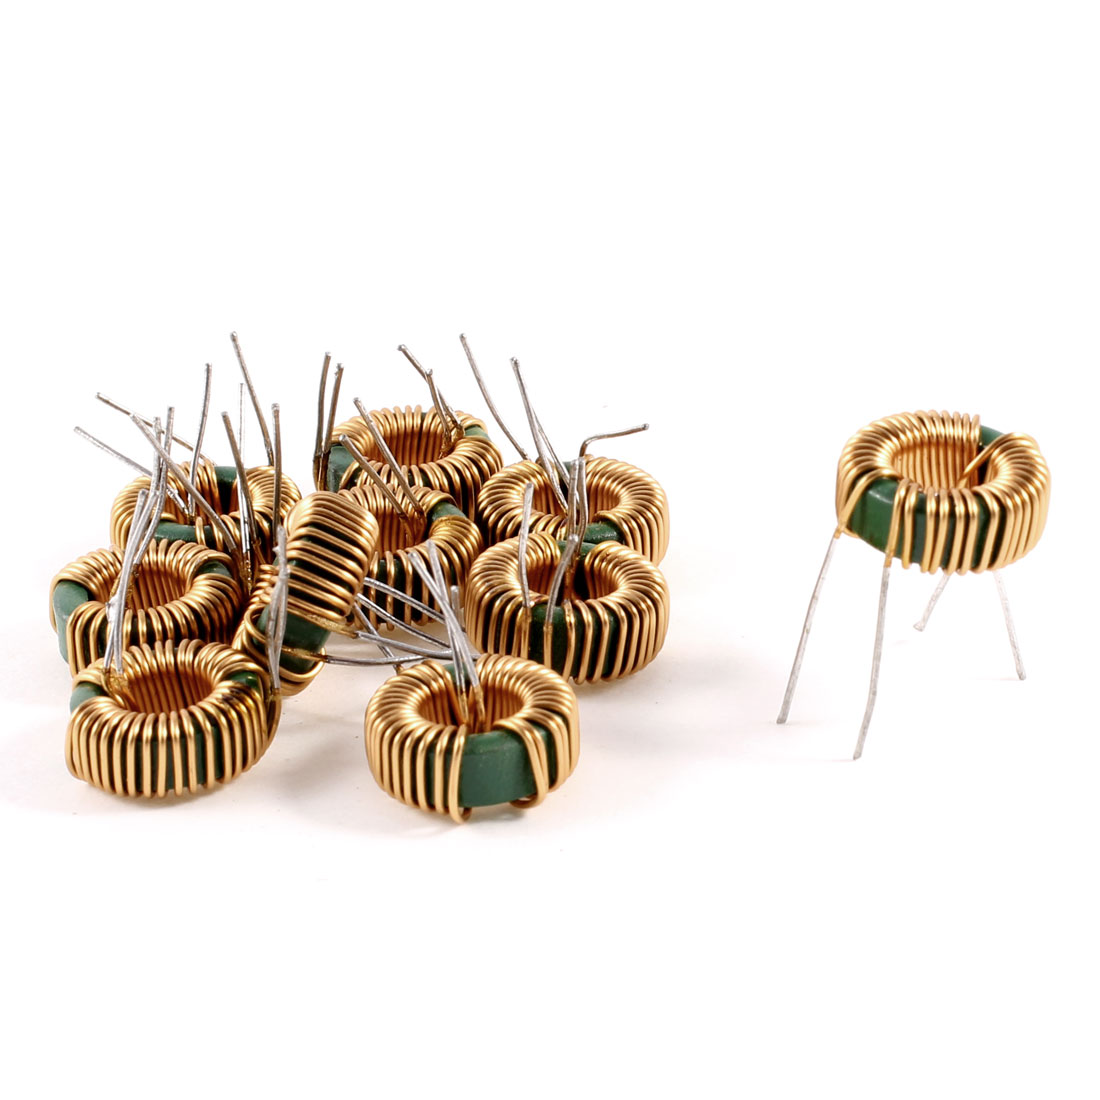 10 Pcs Toroid Core Common Mode Inductor Choke 1.2MH 40mOhm 2A Coil